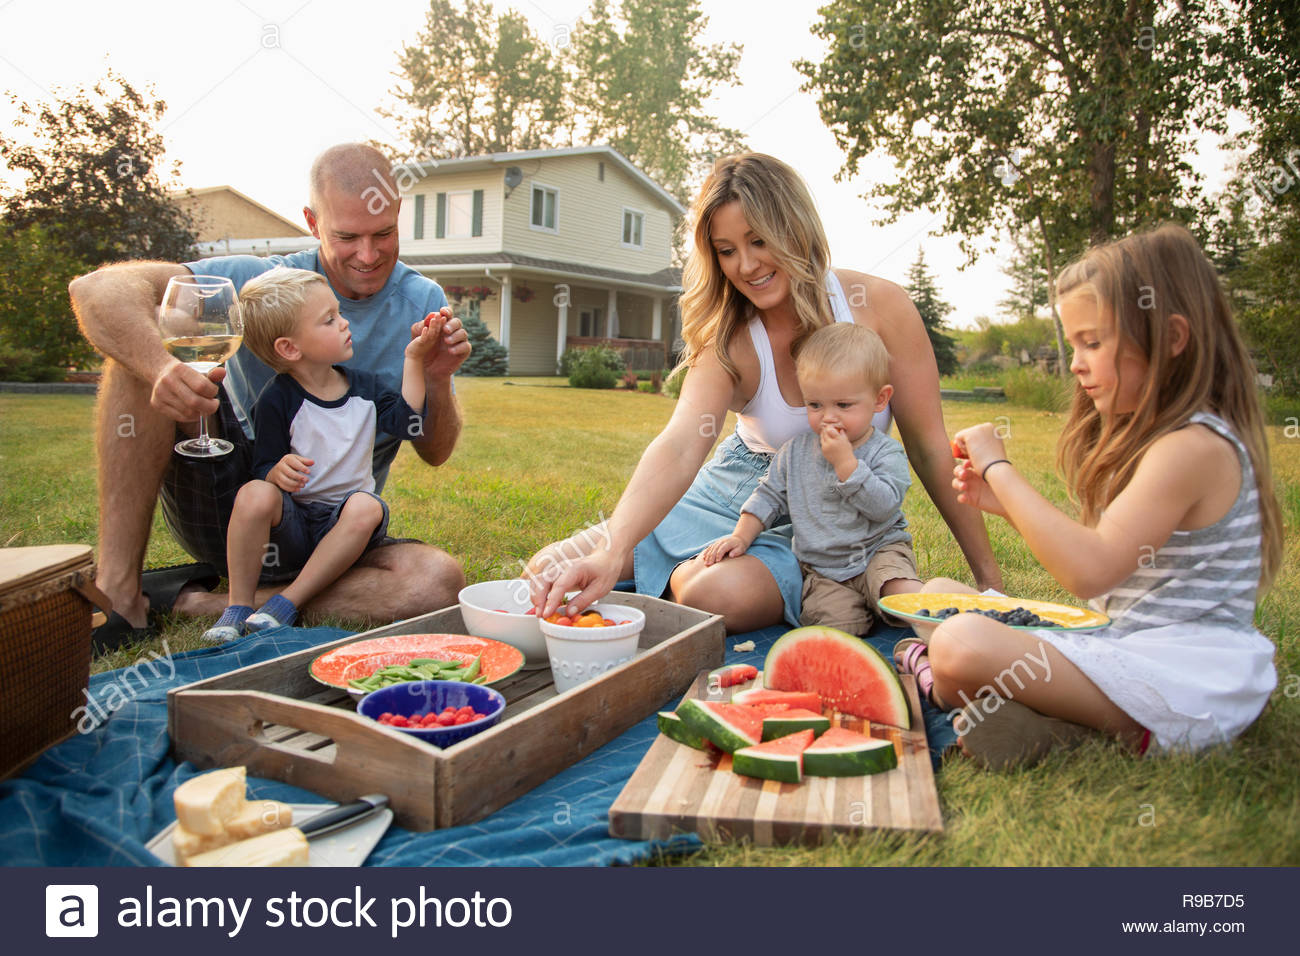 Young family enjoying picnic in rural yard - Stock Image